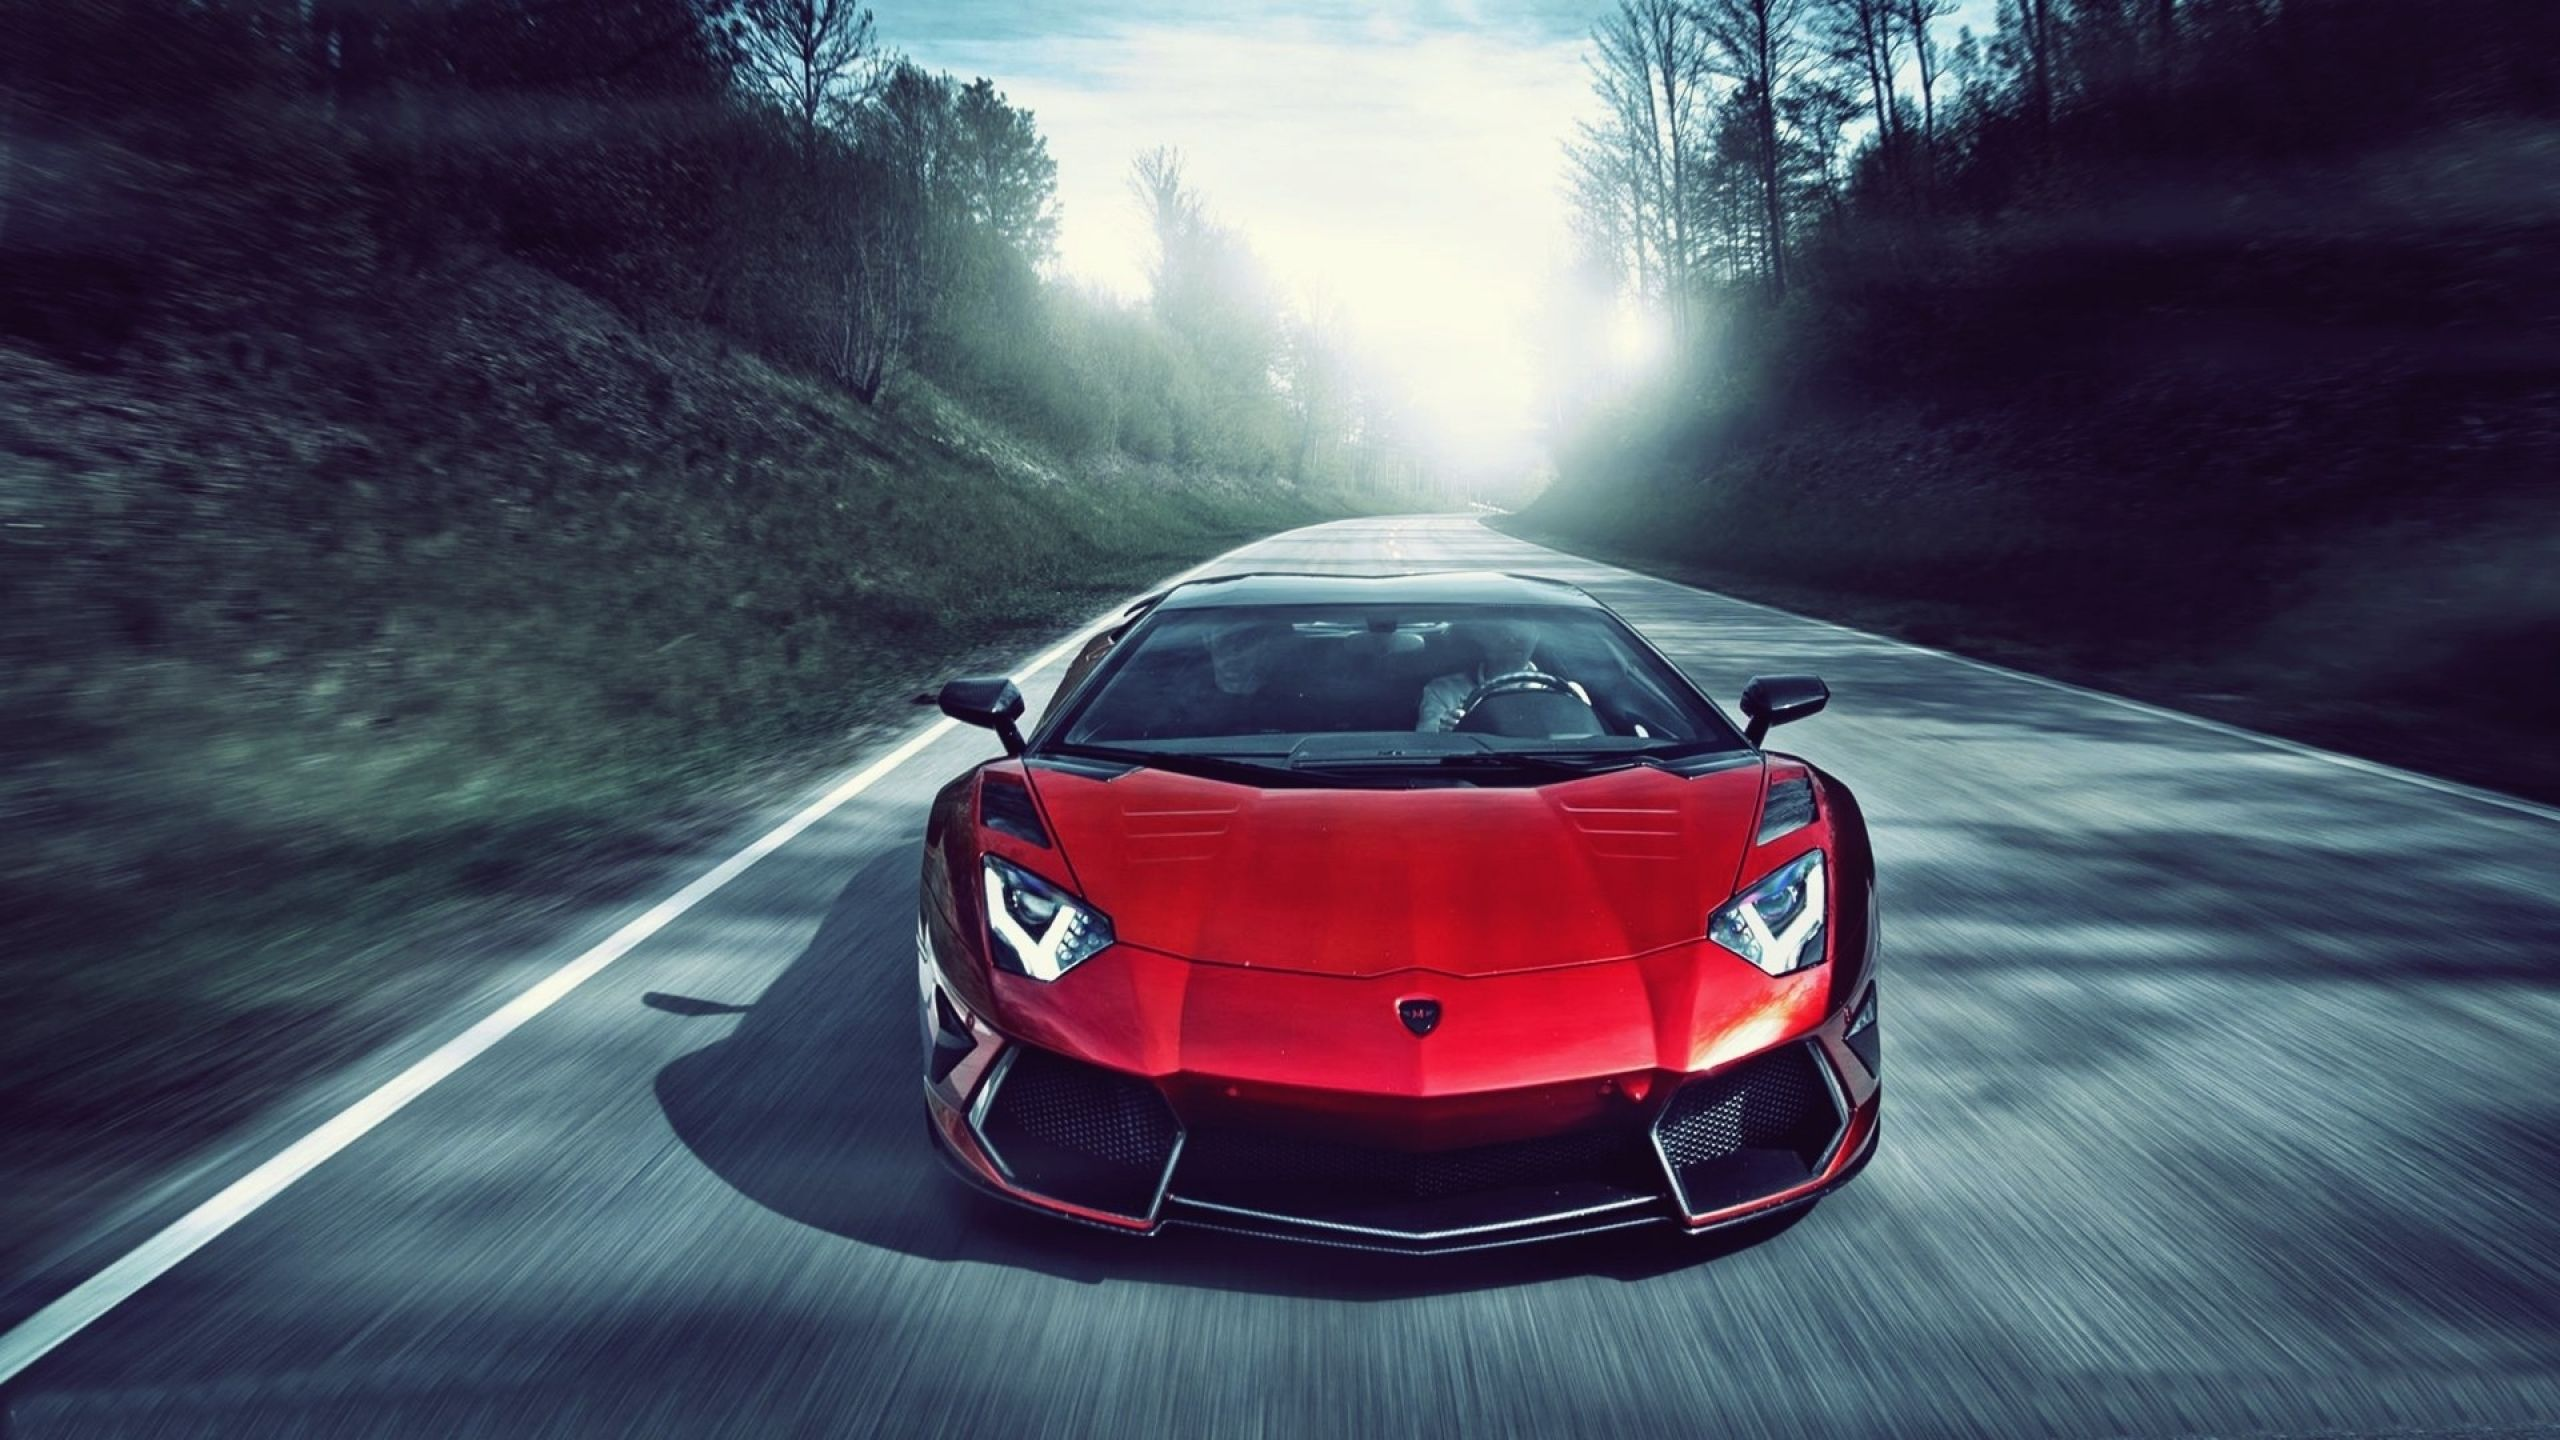 Give your home a bold look this year! 64k Ultra Hd Cars Wallpapers Top Free 64k Ultra Hd Cars Backgrounds Wallpaperaccess